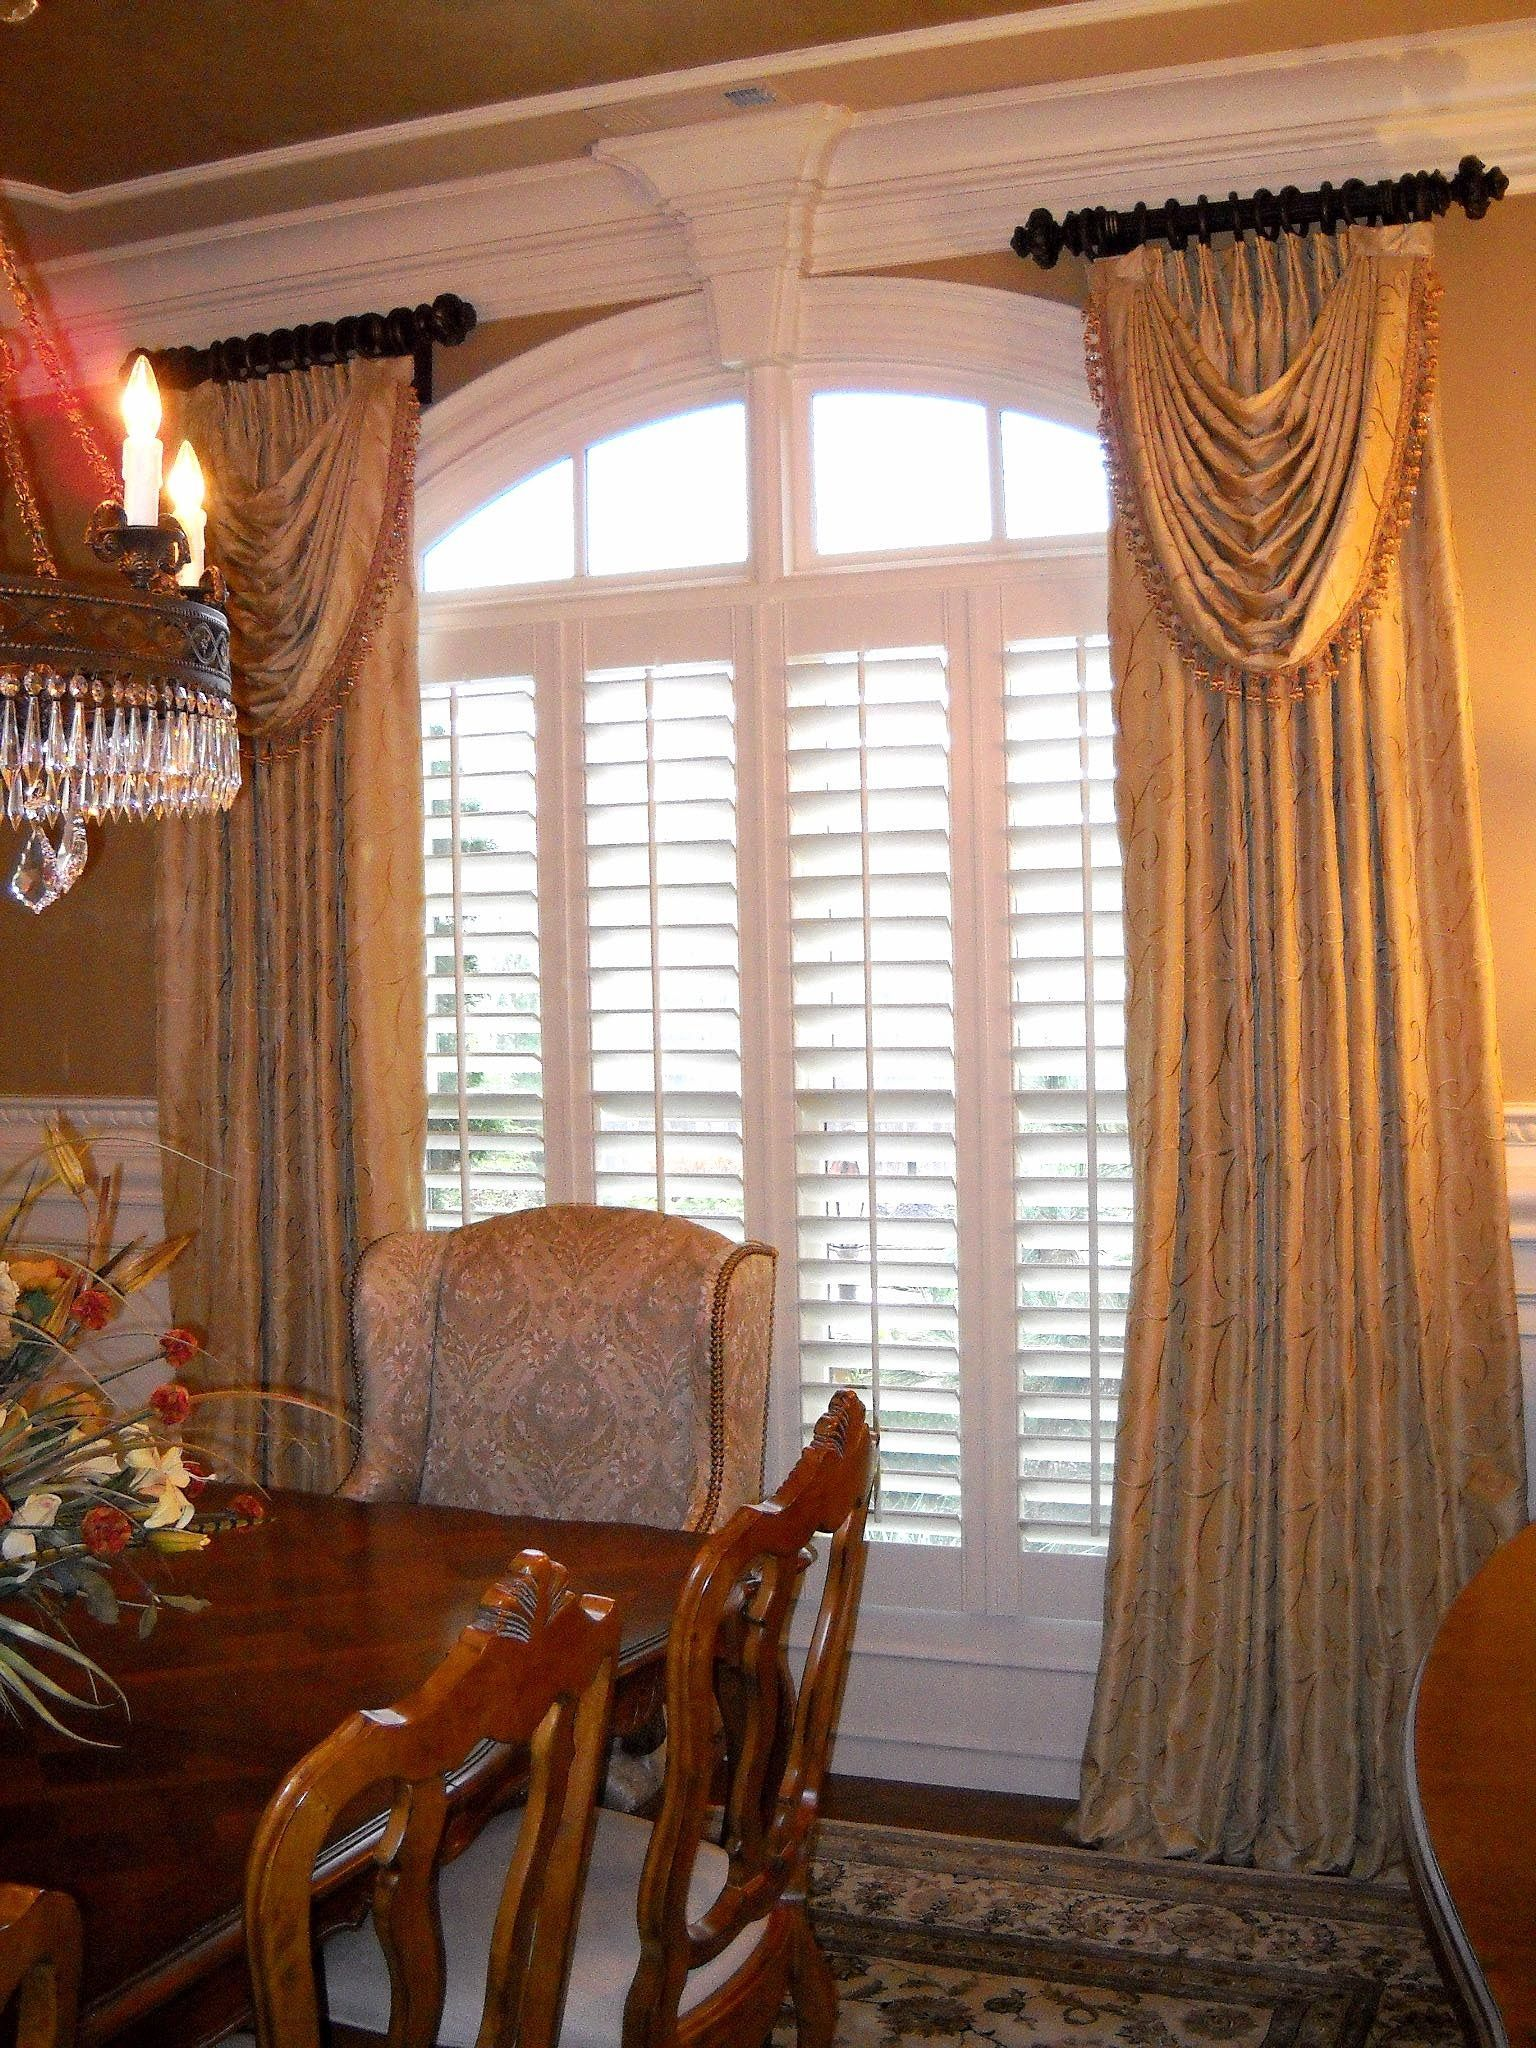 Dining room window coverings  windowtreatments ring curtains with swags in gold silk with gold